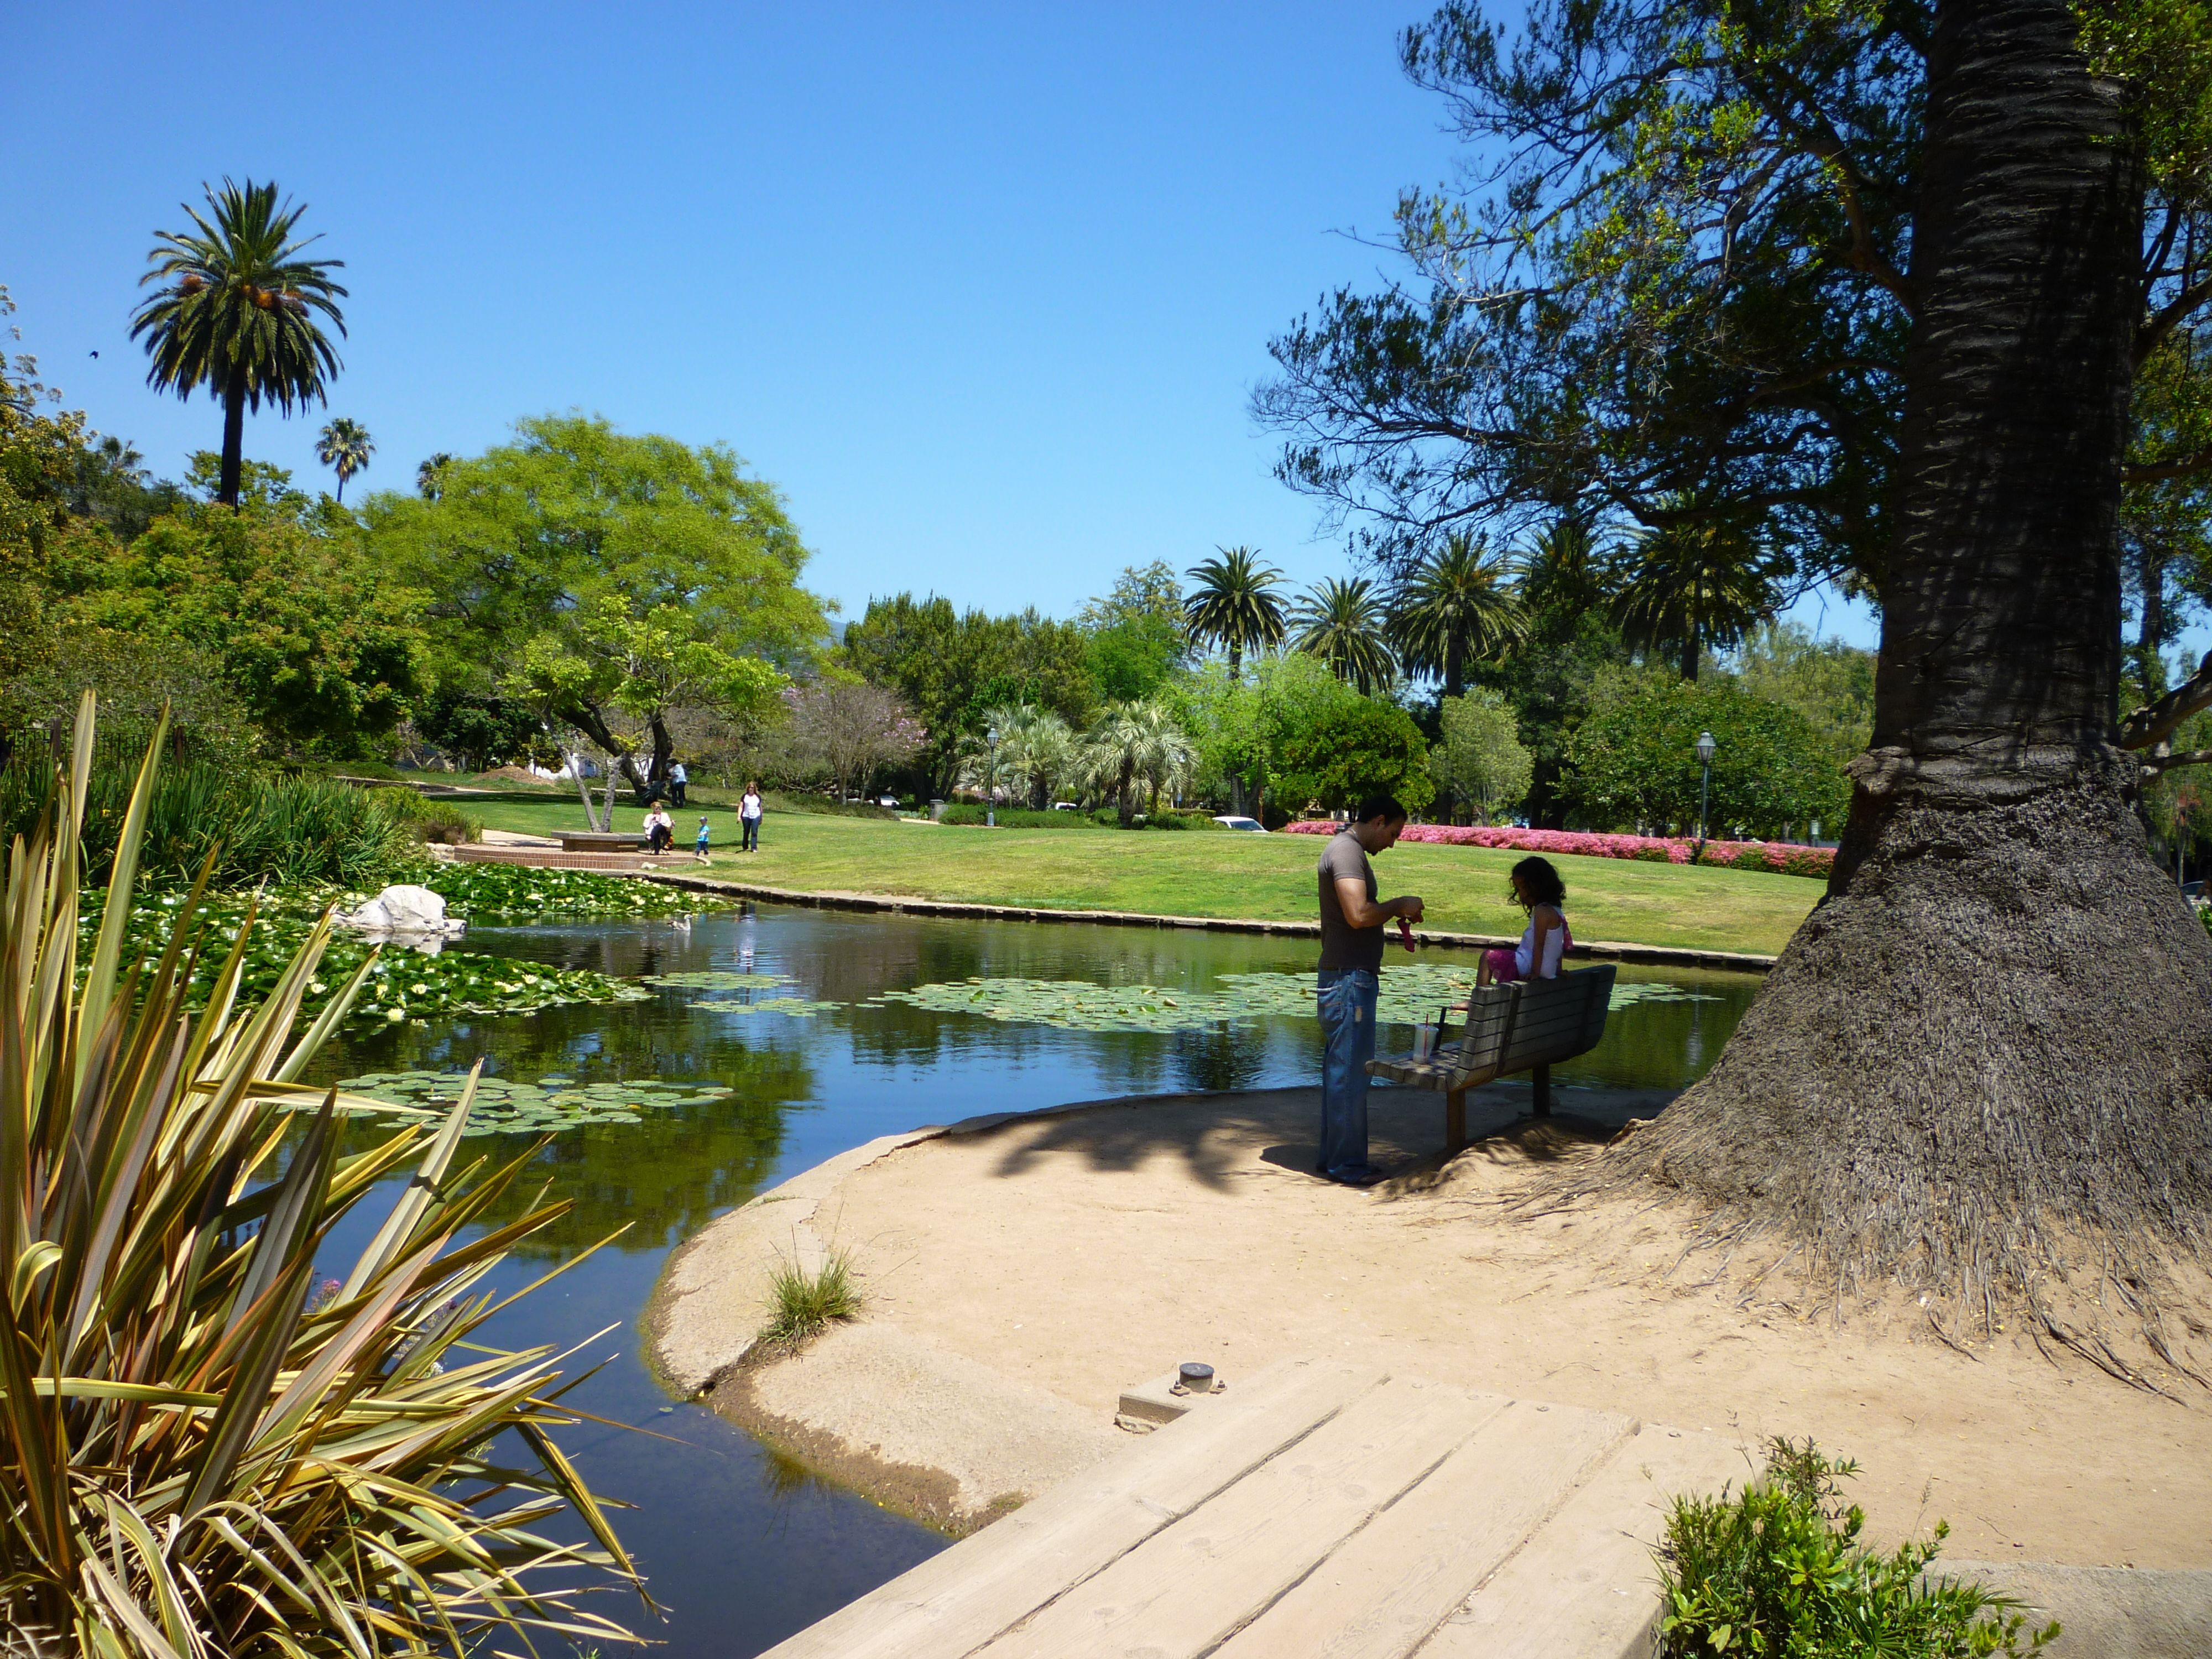 Alice Keck Park Gardens with Koi, Turtles, and Ducks is a fantastic place to picnic and explore.